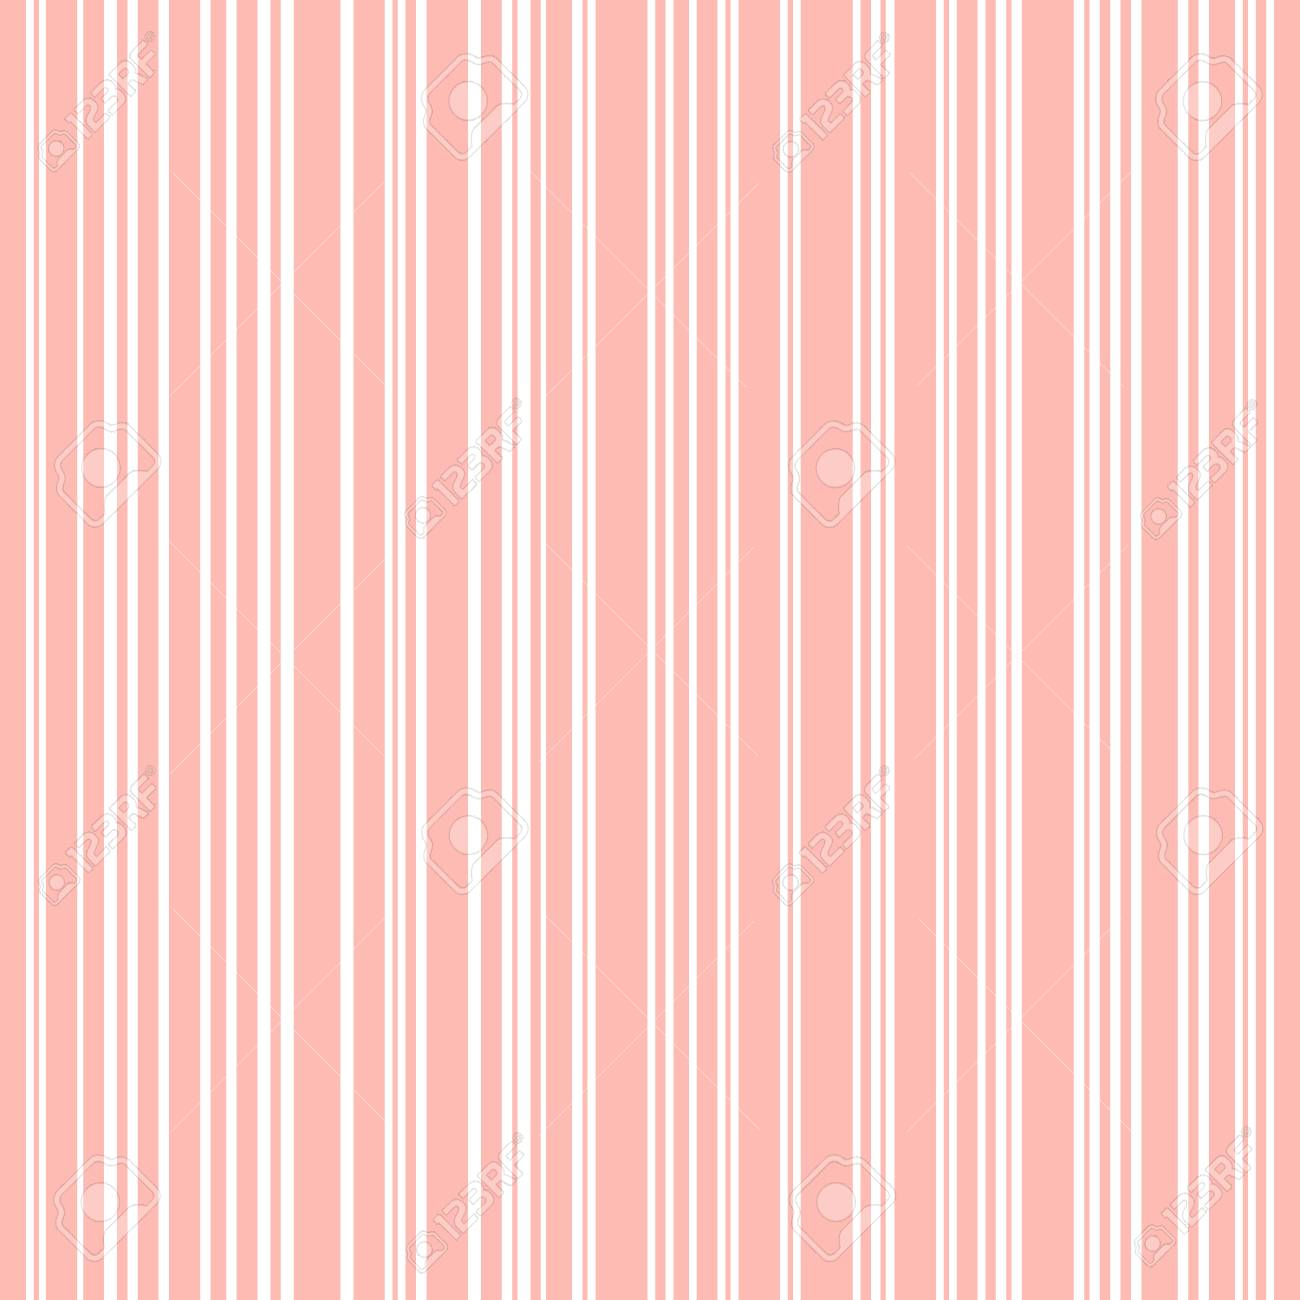 Lines Background Pink And White Stripes Seamless Pattern Stock